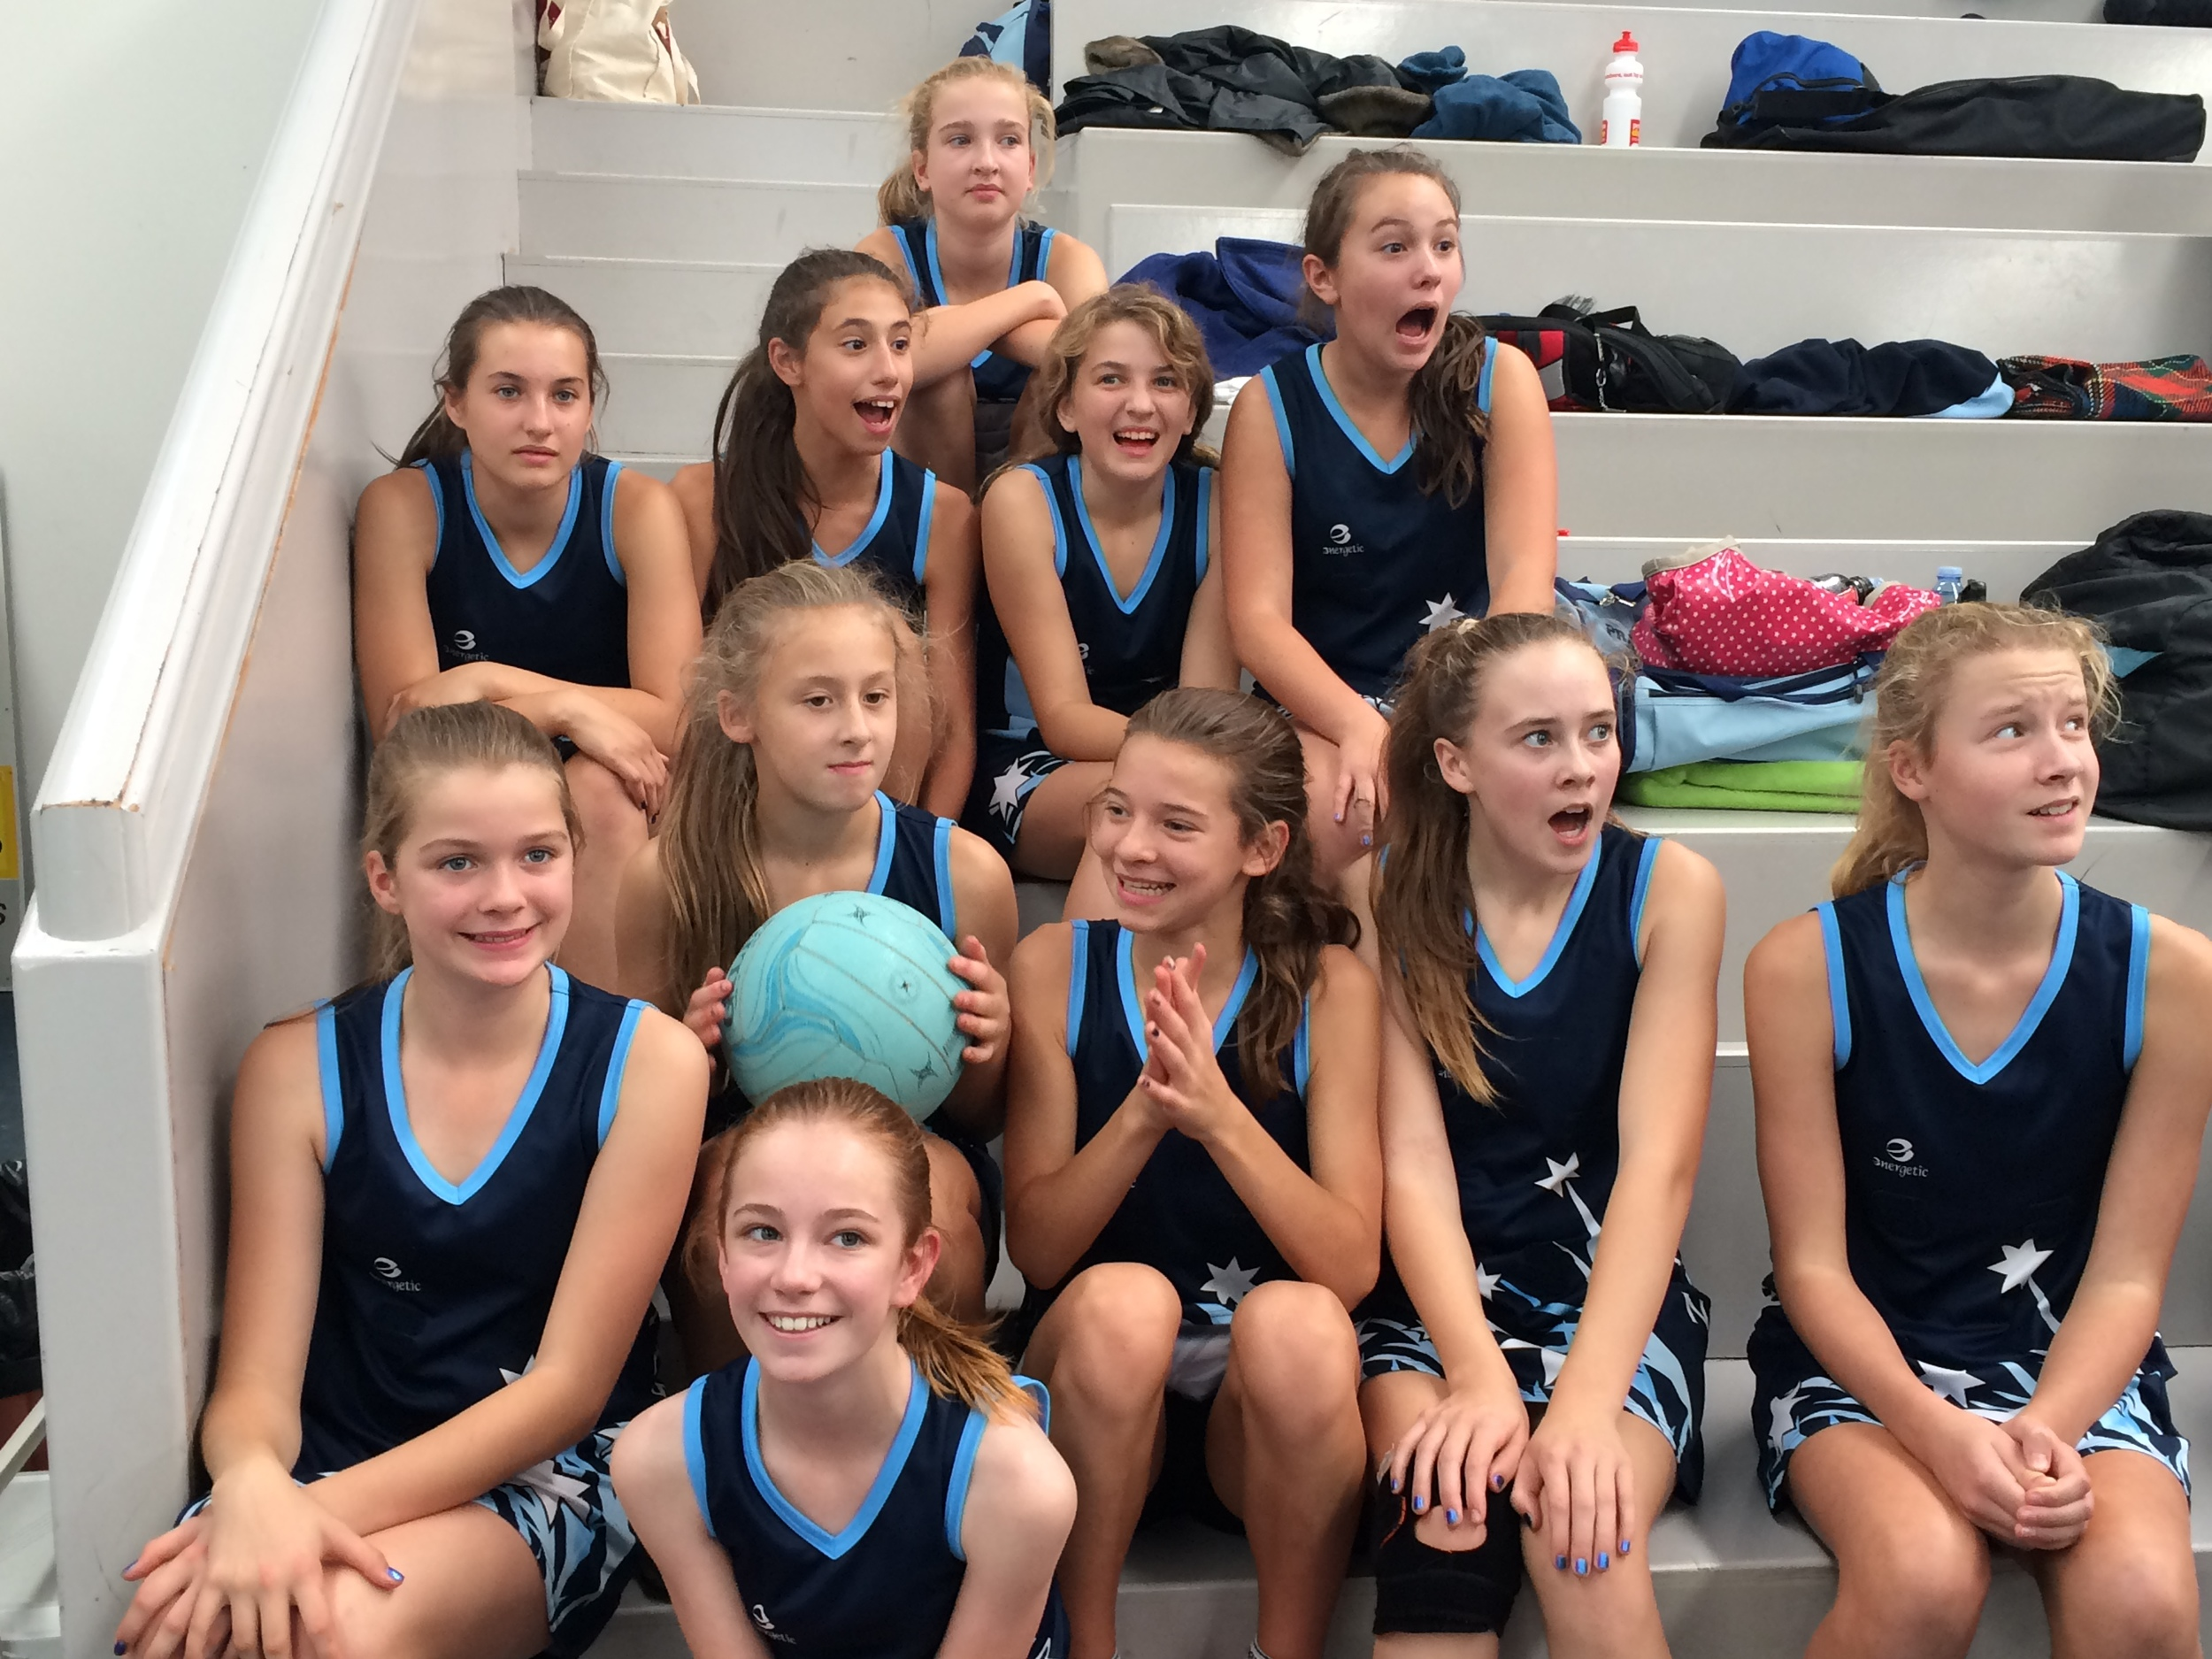 The Under 13 Team 2 reacts to hearing that they have made the finals!!